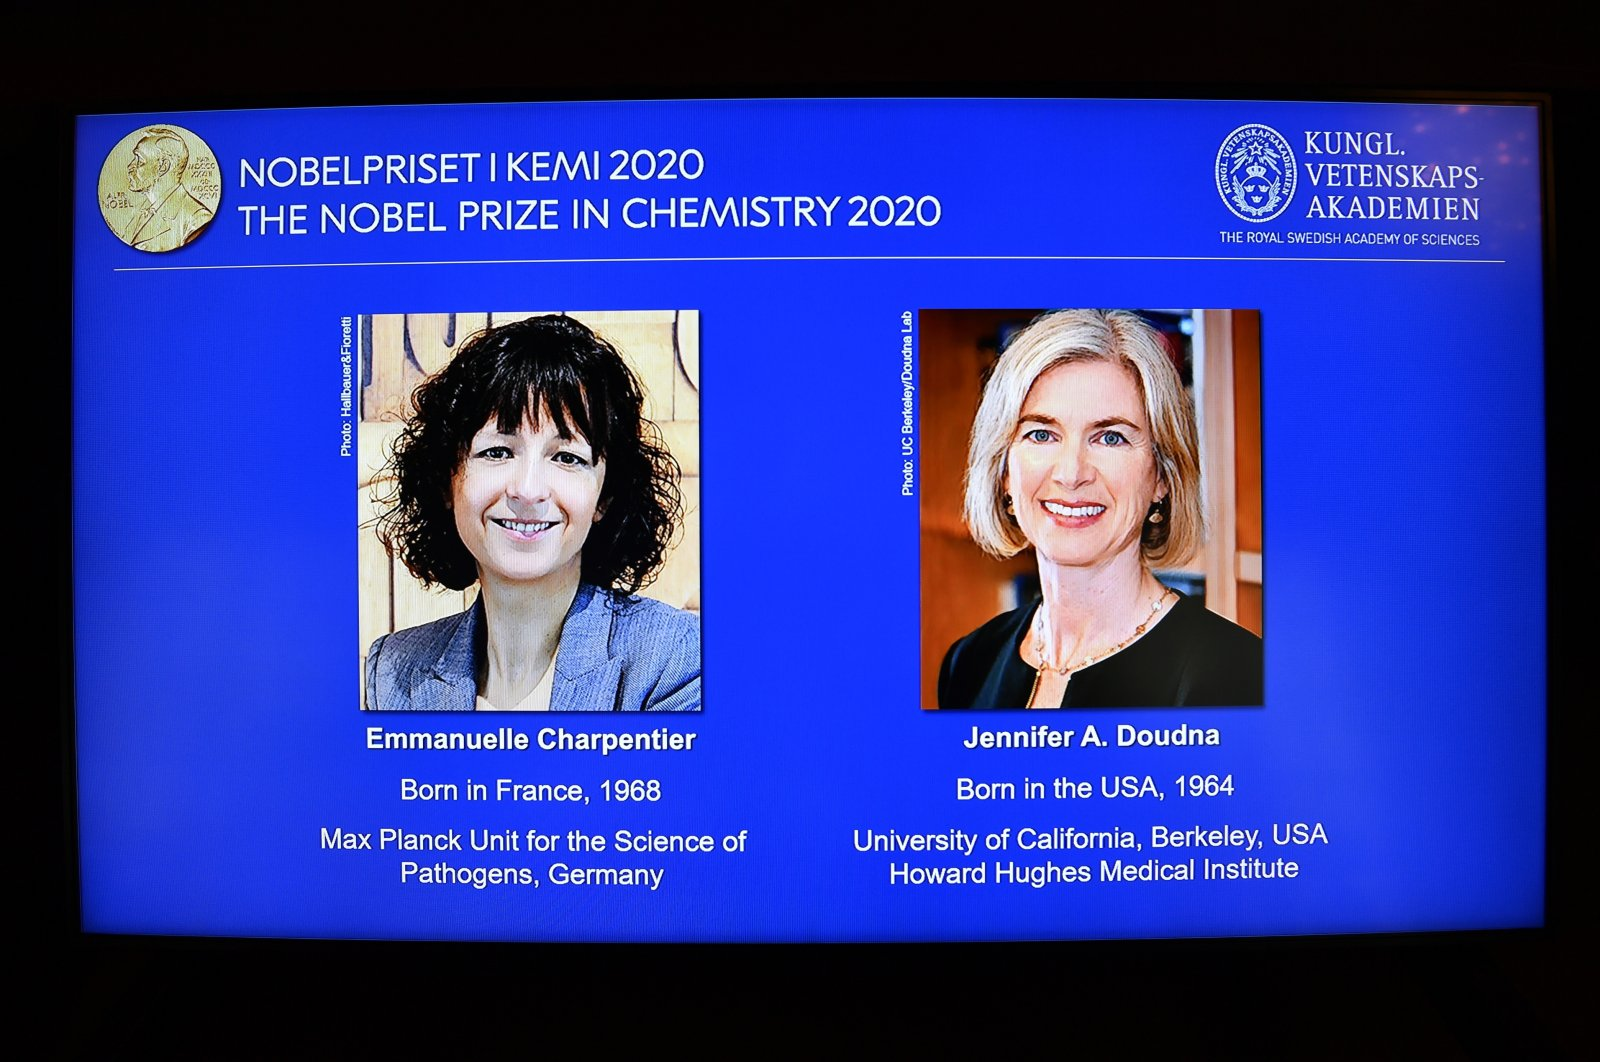 Photos of the winners of the 2020 Nobel Prize in Chemistry are displayed on a screen during a news conference at the Royal Swedish Academy of Sciences, in Stockholm, Sweden, Oct. 7, 2020. (EPA Photo)